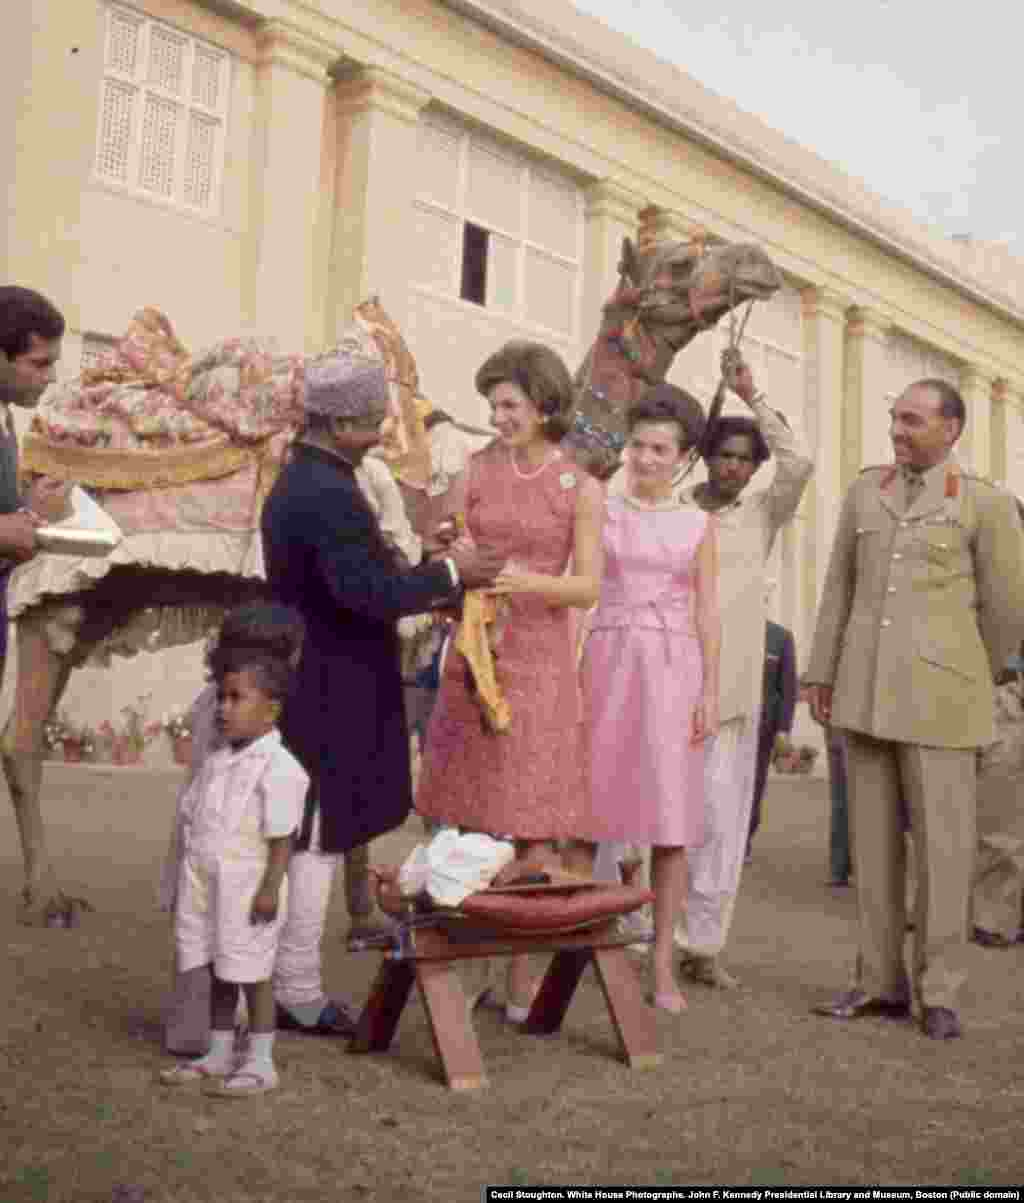 "First lady Jacqueline Kennedy and her sister, Lee Radziwill, meet camel driver Bashir Ahmad. Ahmad had formed a friendship with U.S. Vice President Lyndon Johnson the year before after Johnson stopped to shake the camel driver's hand on his own trip to Pakistan. After Johnson casually invited Bashir to ""come see me sometime,"" Bashir accepted the invitation. He became a media spectacle after he traveled to the United States to meet with Johnson and the Kennedys."